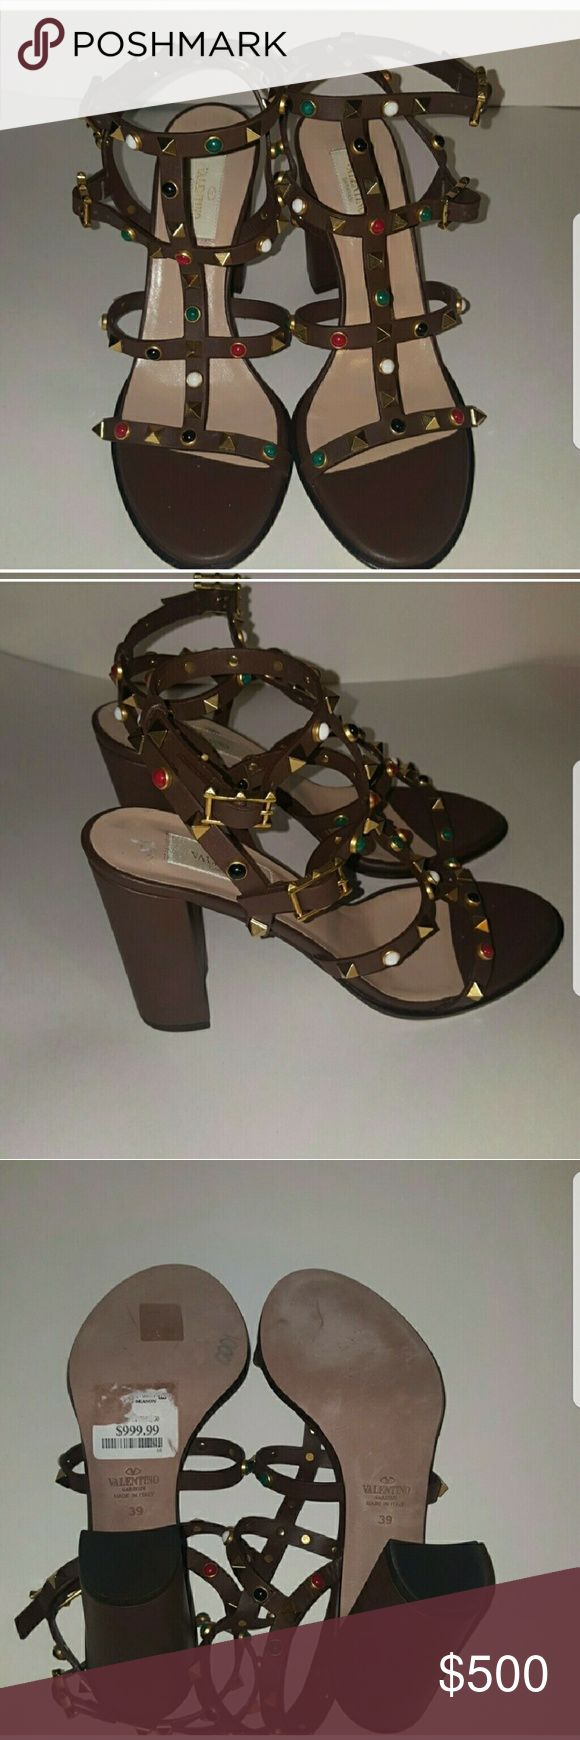 SALE Valentino Rock Stud sandals Brand new REASONABLE OFFERS ACCEPTED Shoes Sandals